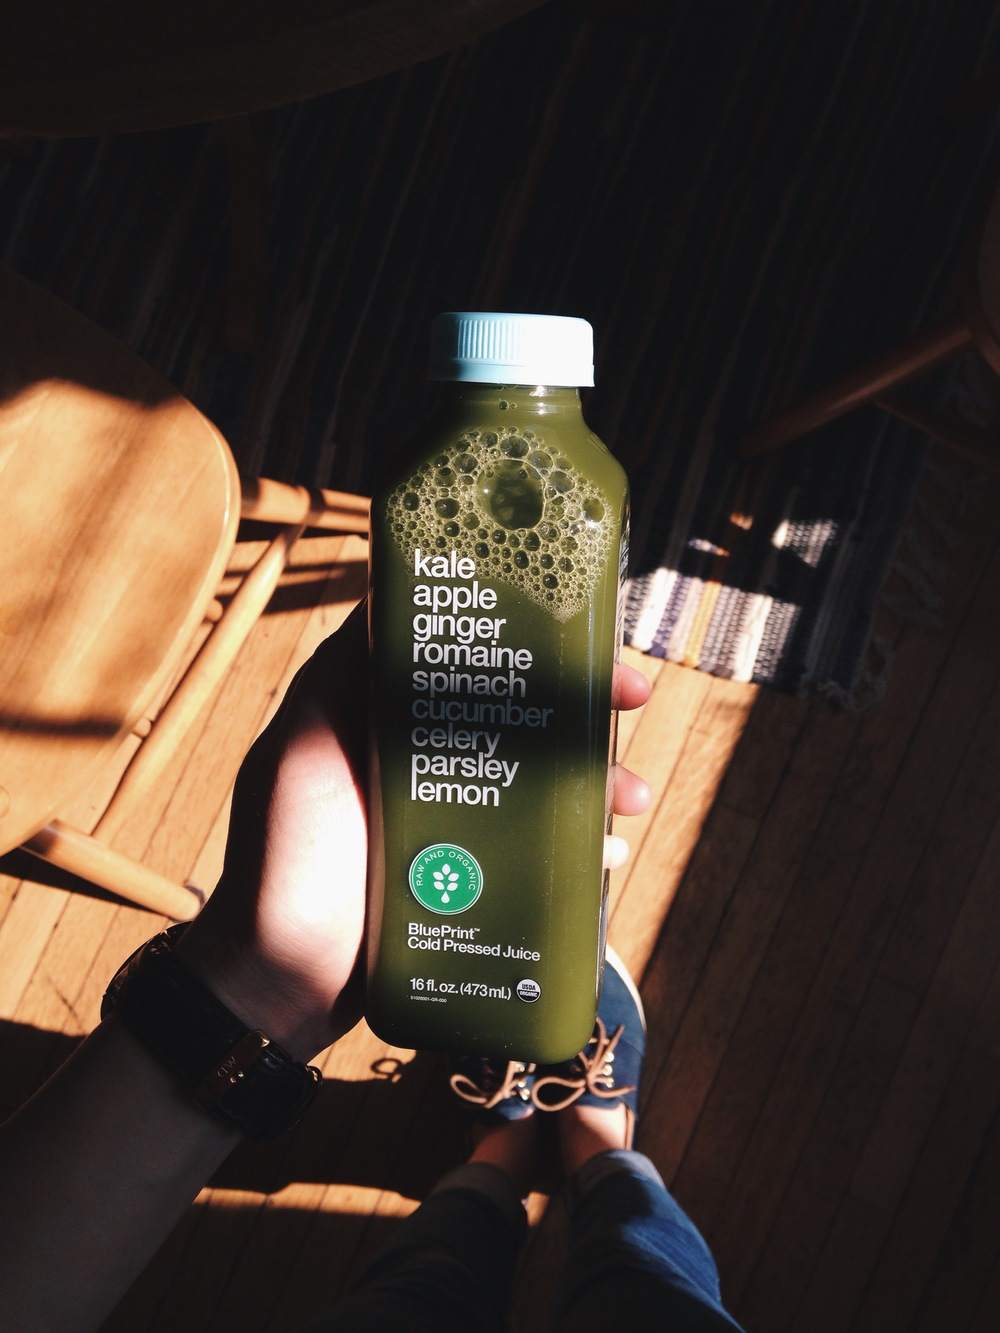 Got my veggies in the next morning with one of these suckers. Have you tried this before? I actually REALLY liked it. I would love to try one of their cleanses at some point.